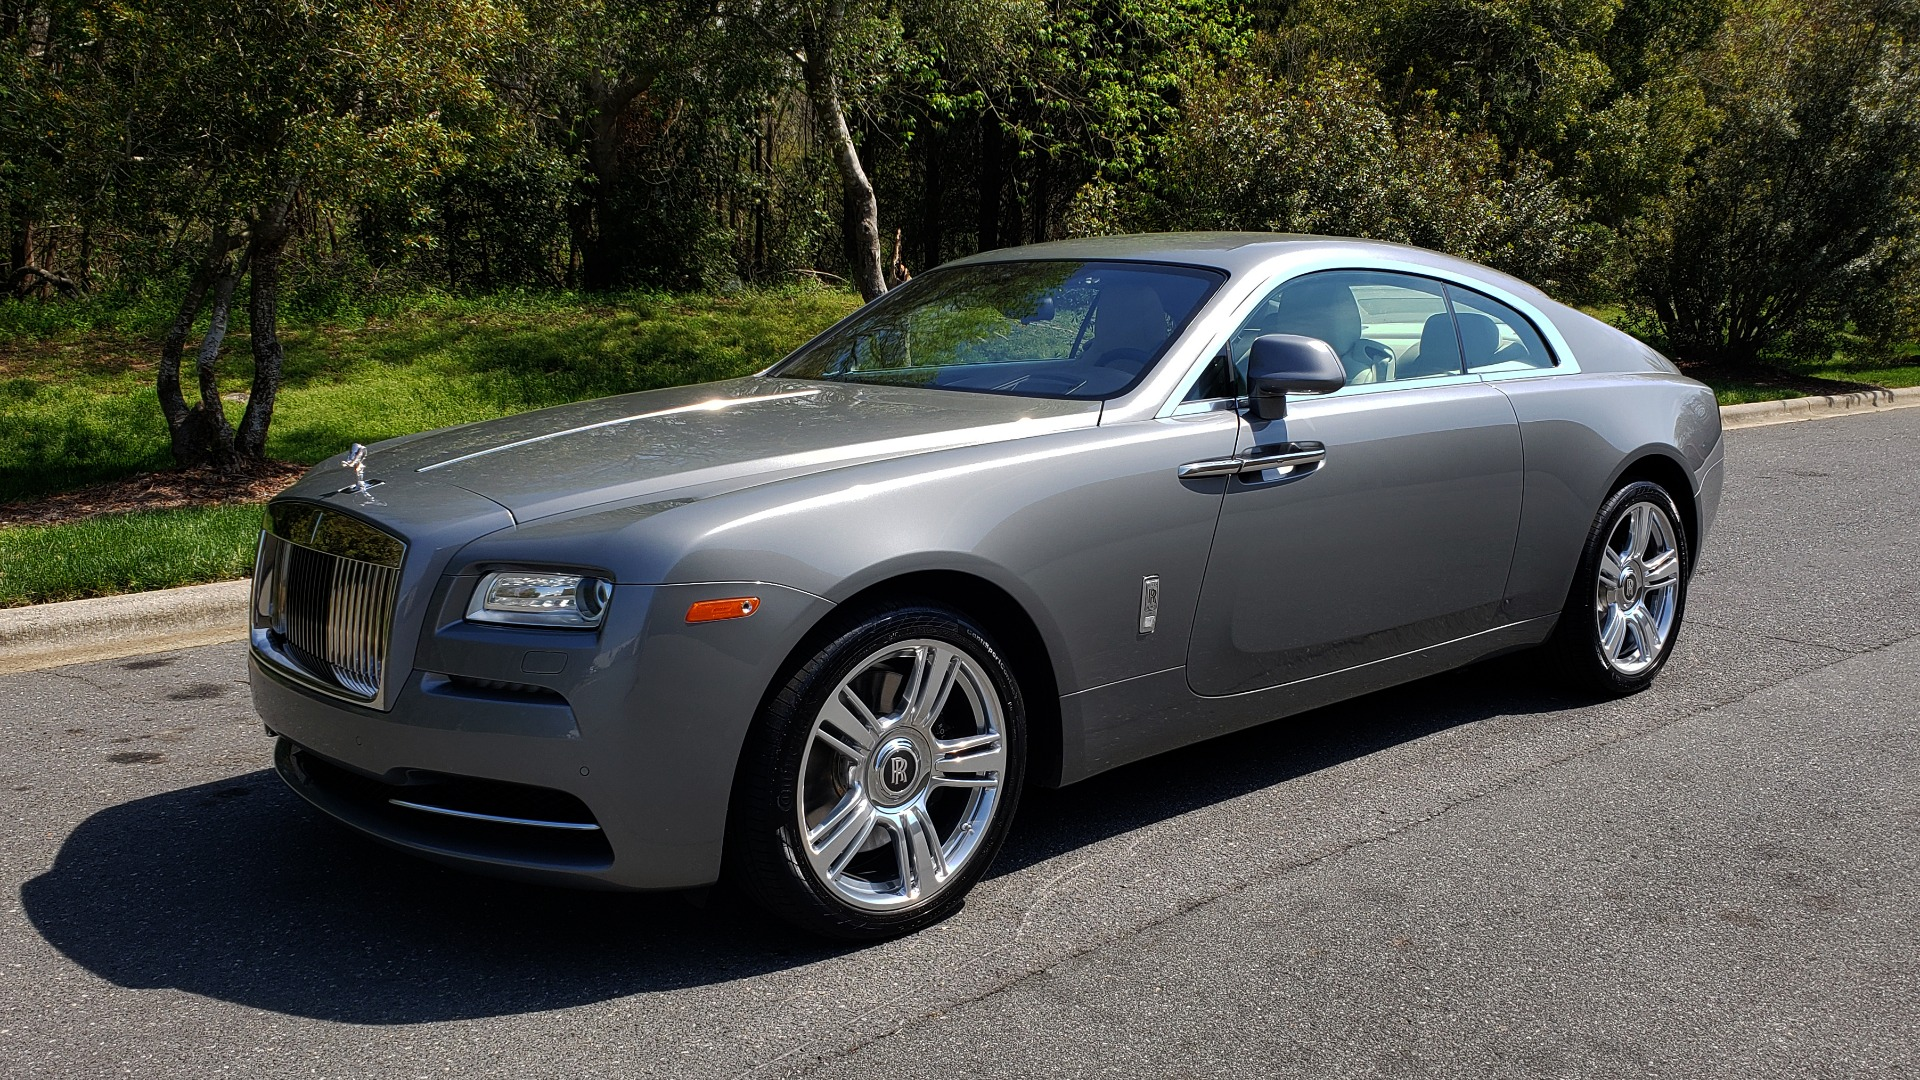 Used 2015 Rolls-Royce WRAITH 2DR COUPE / DRVR ASST / LANE DEPART / HEADS-UP / CAMERA for sale $159,995 at Formula Imports in Charlotte NC 28227 6